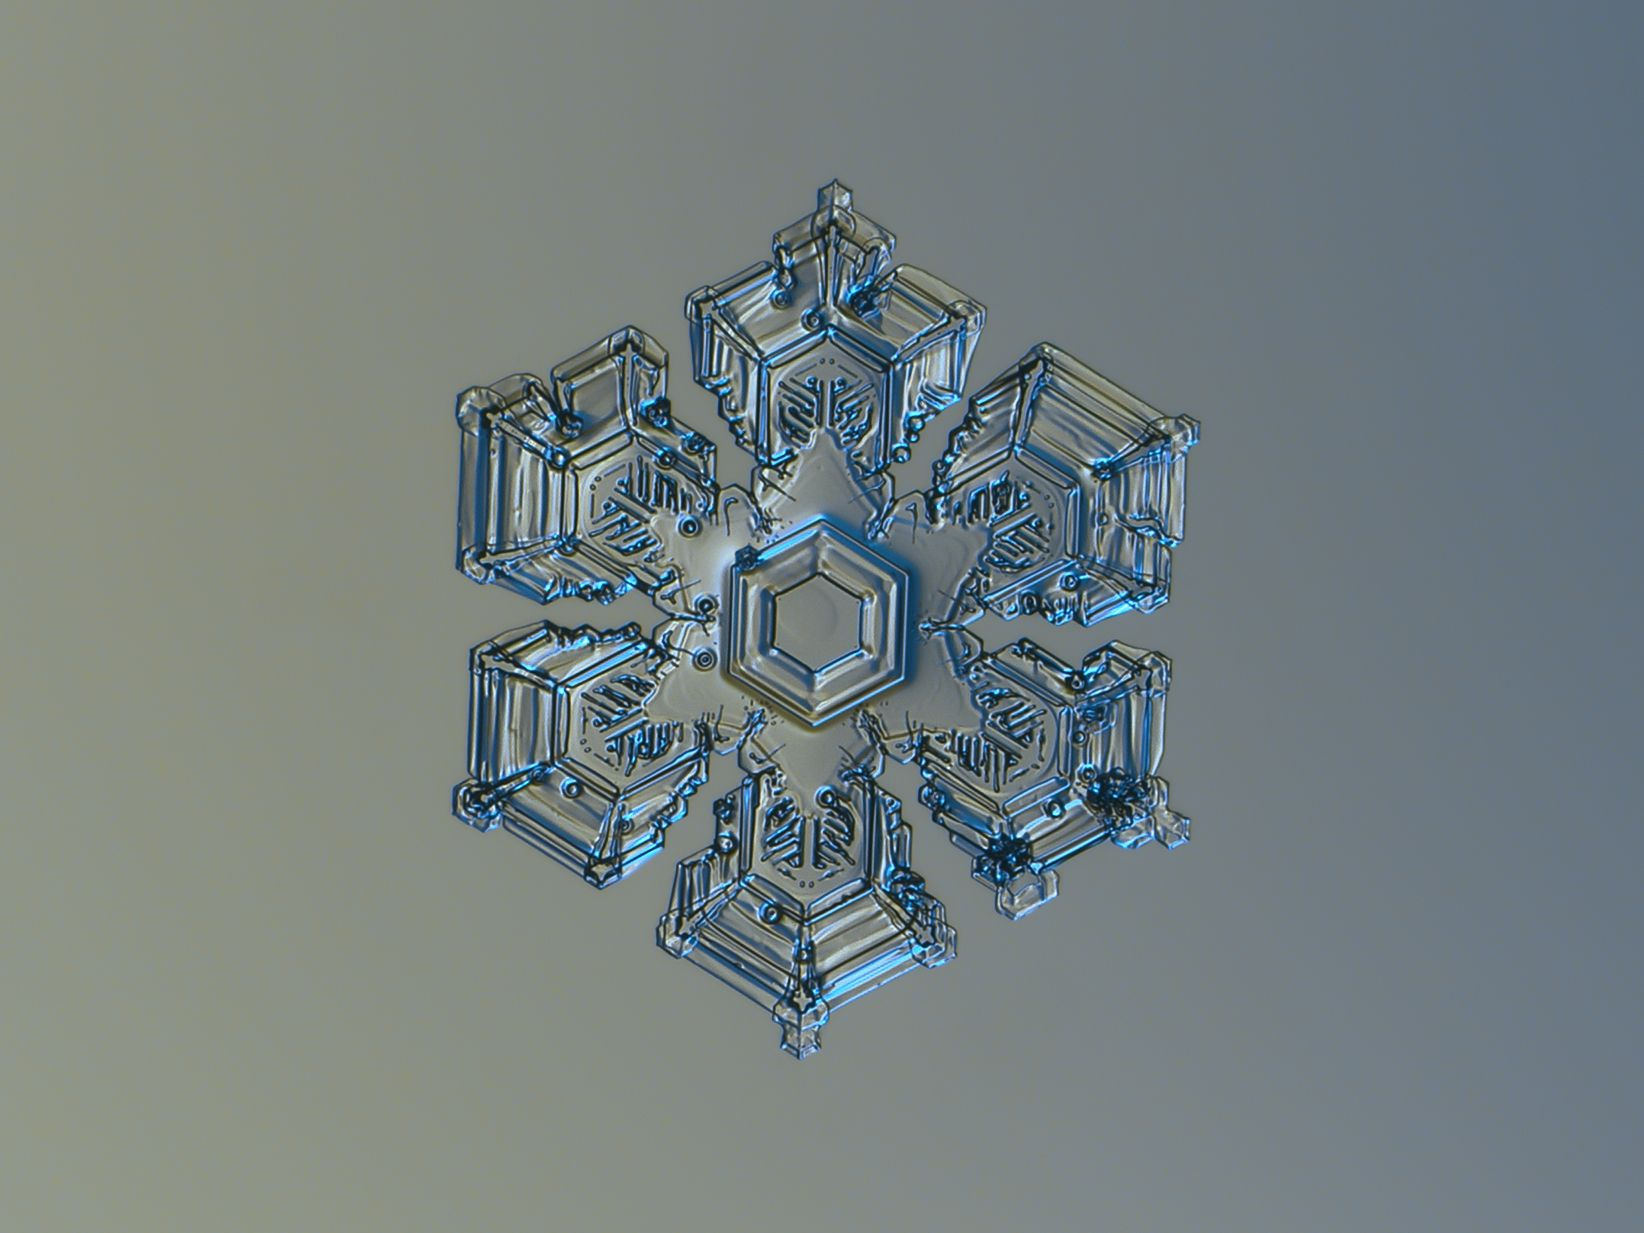 amusing monday have you ever seen a snowflake so fine watching